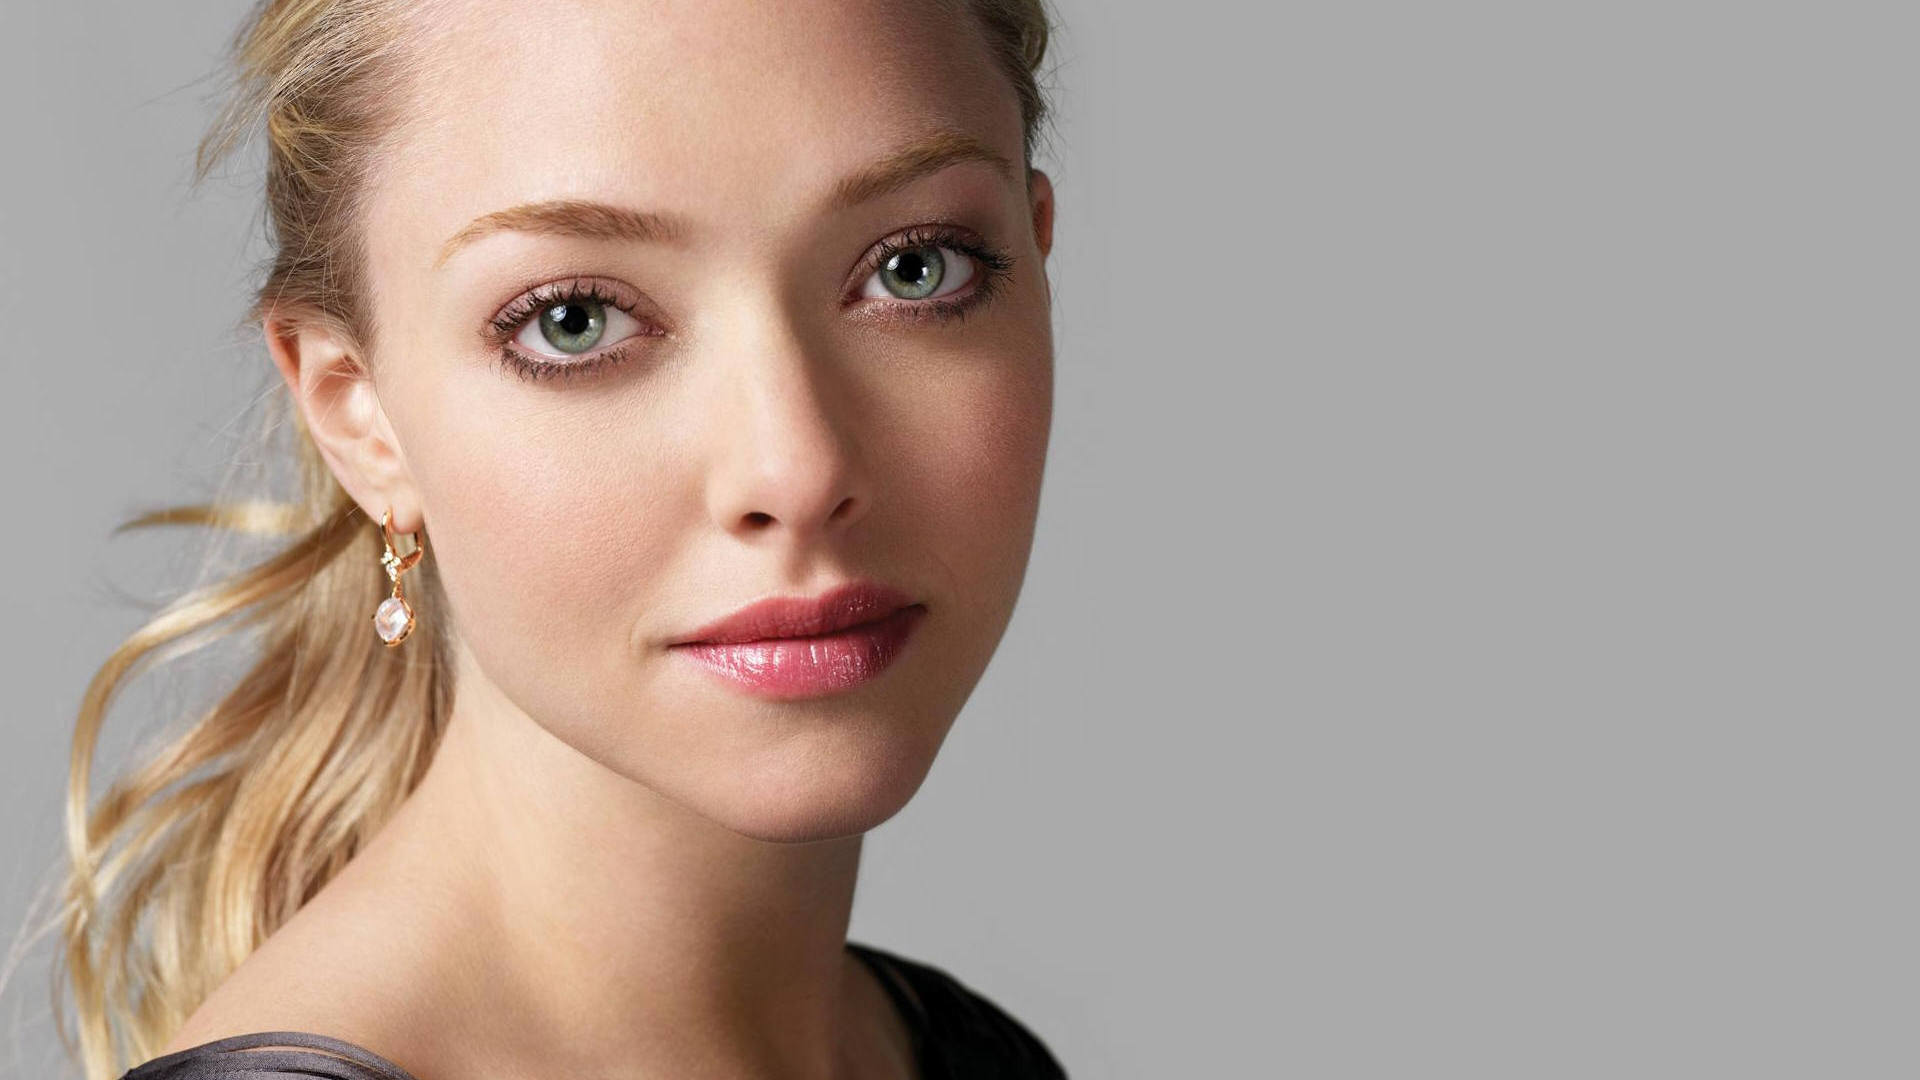 Amanda Seyfried for mobile